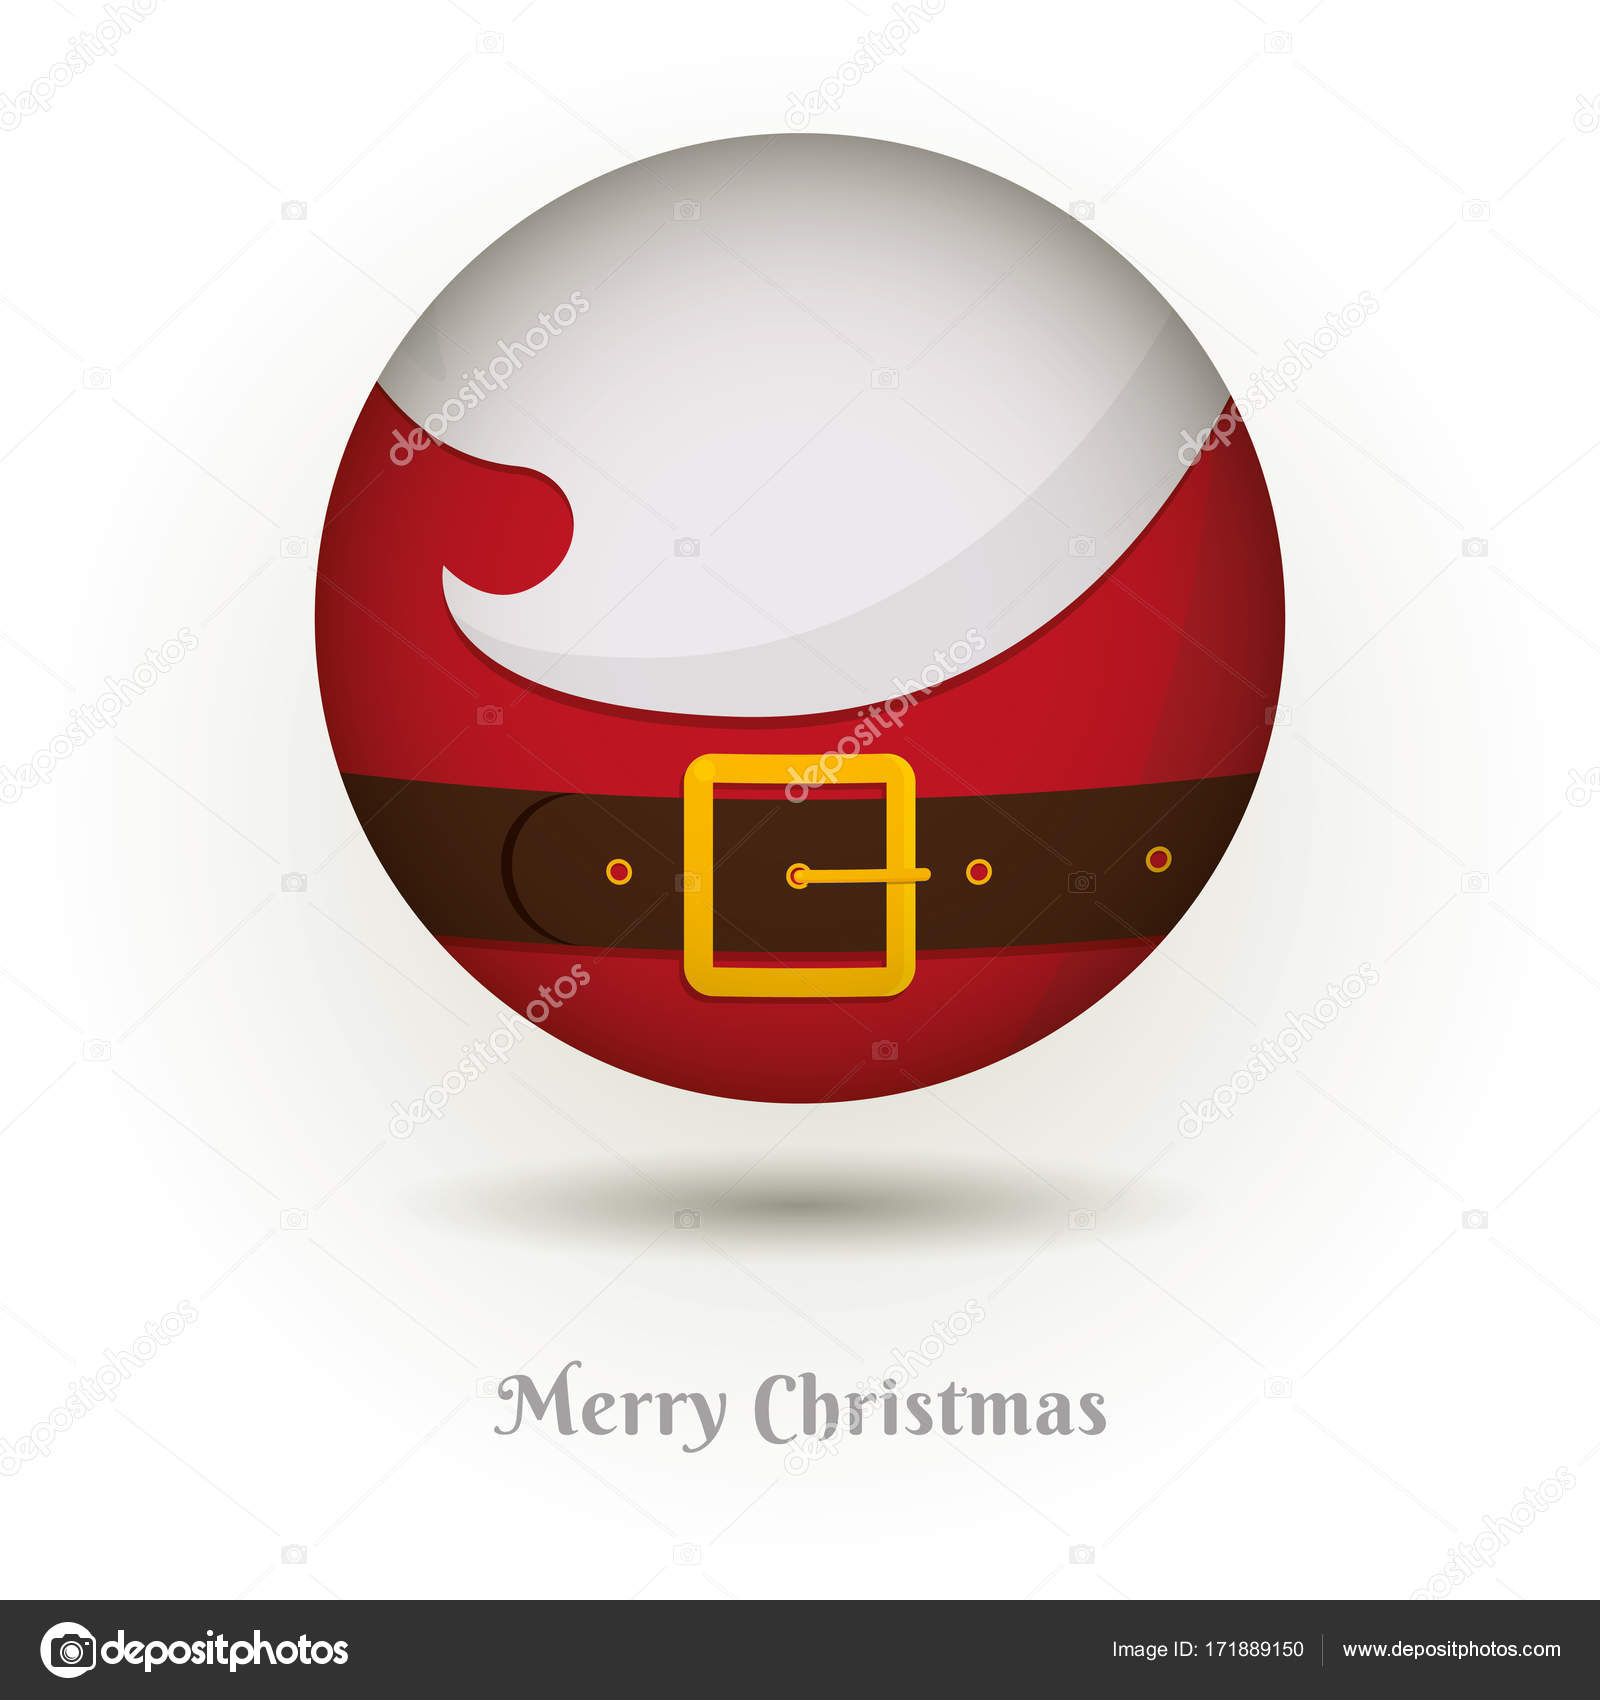 The Beard Of Santa Claus Icon Vector Illustration For New Year And